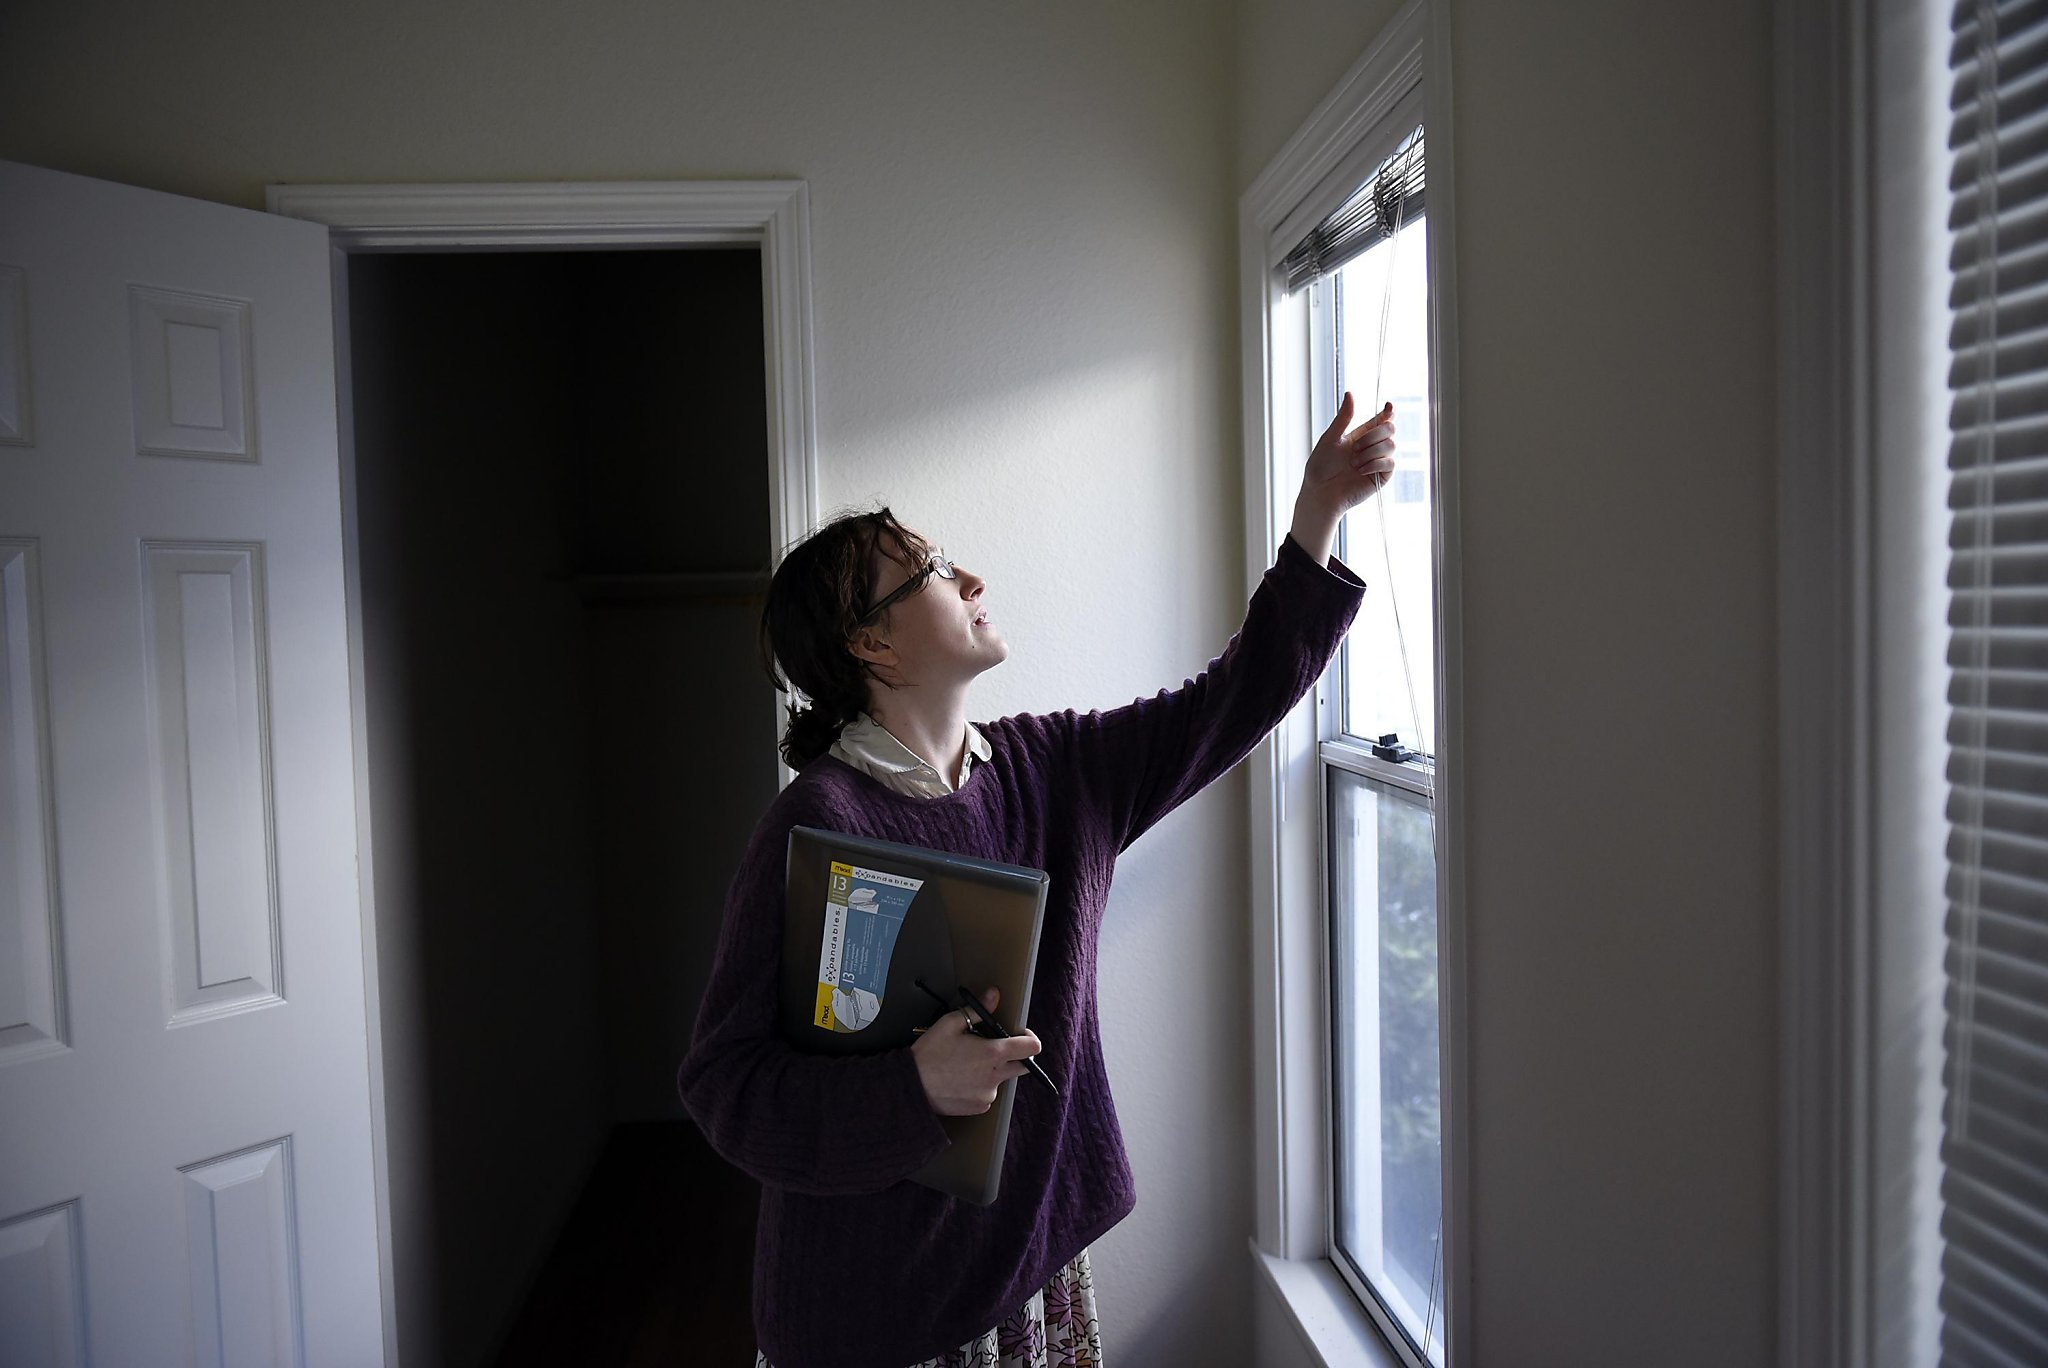 state cities encourage in law units to ease housing crunch san elysse wilson egolf checks on an empty apartment as part of her duties as a